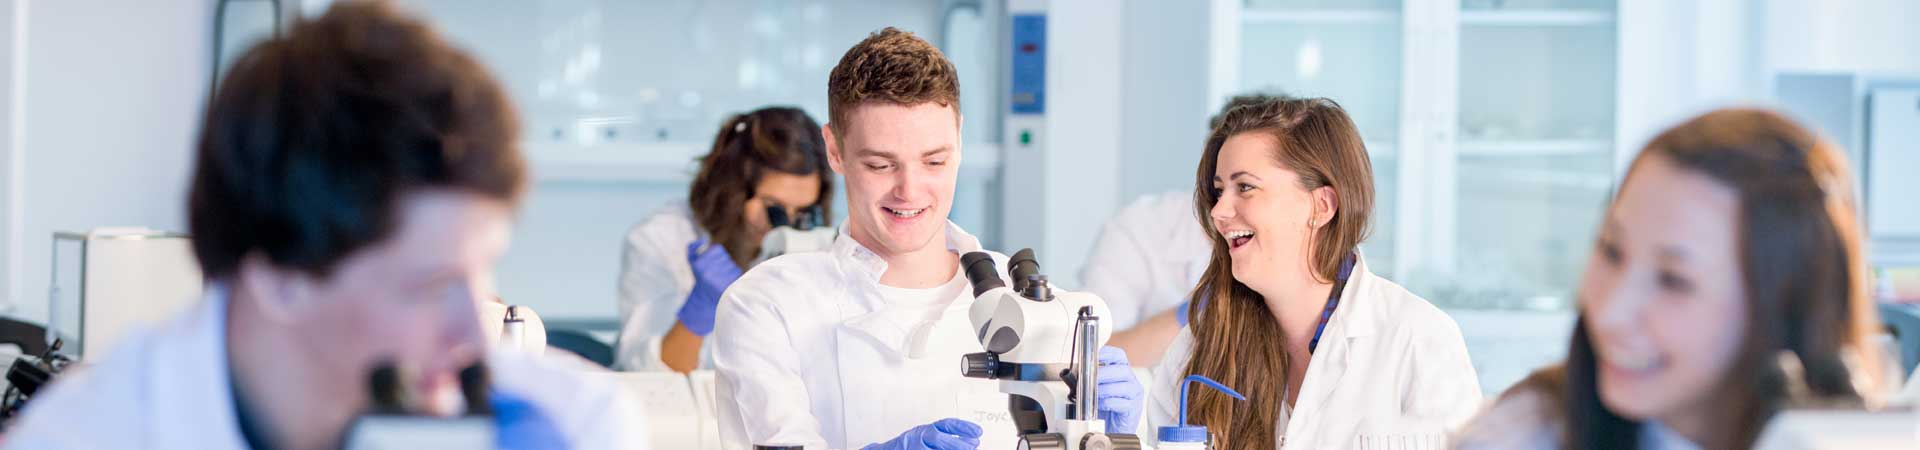 This picture shows a row on marine science students in lab coats in a teaching laboratory having fun with microscopes